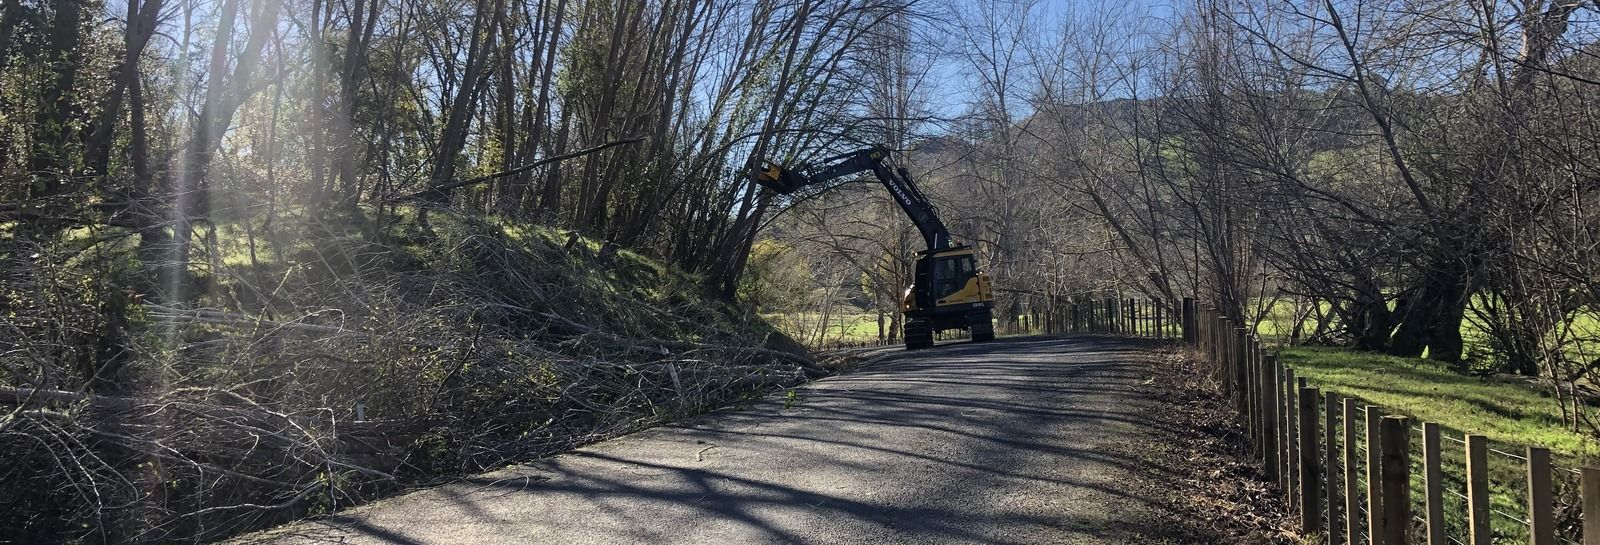 tree removals banner image